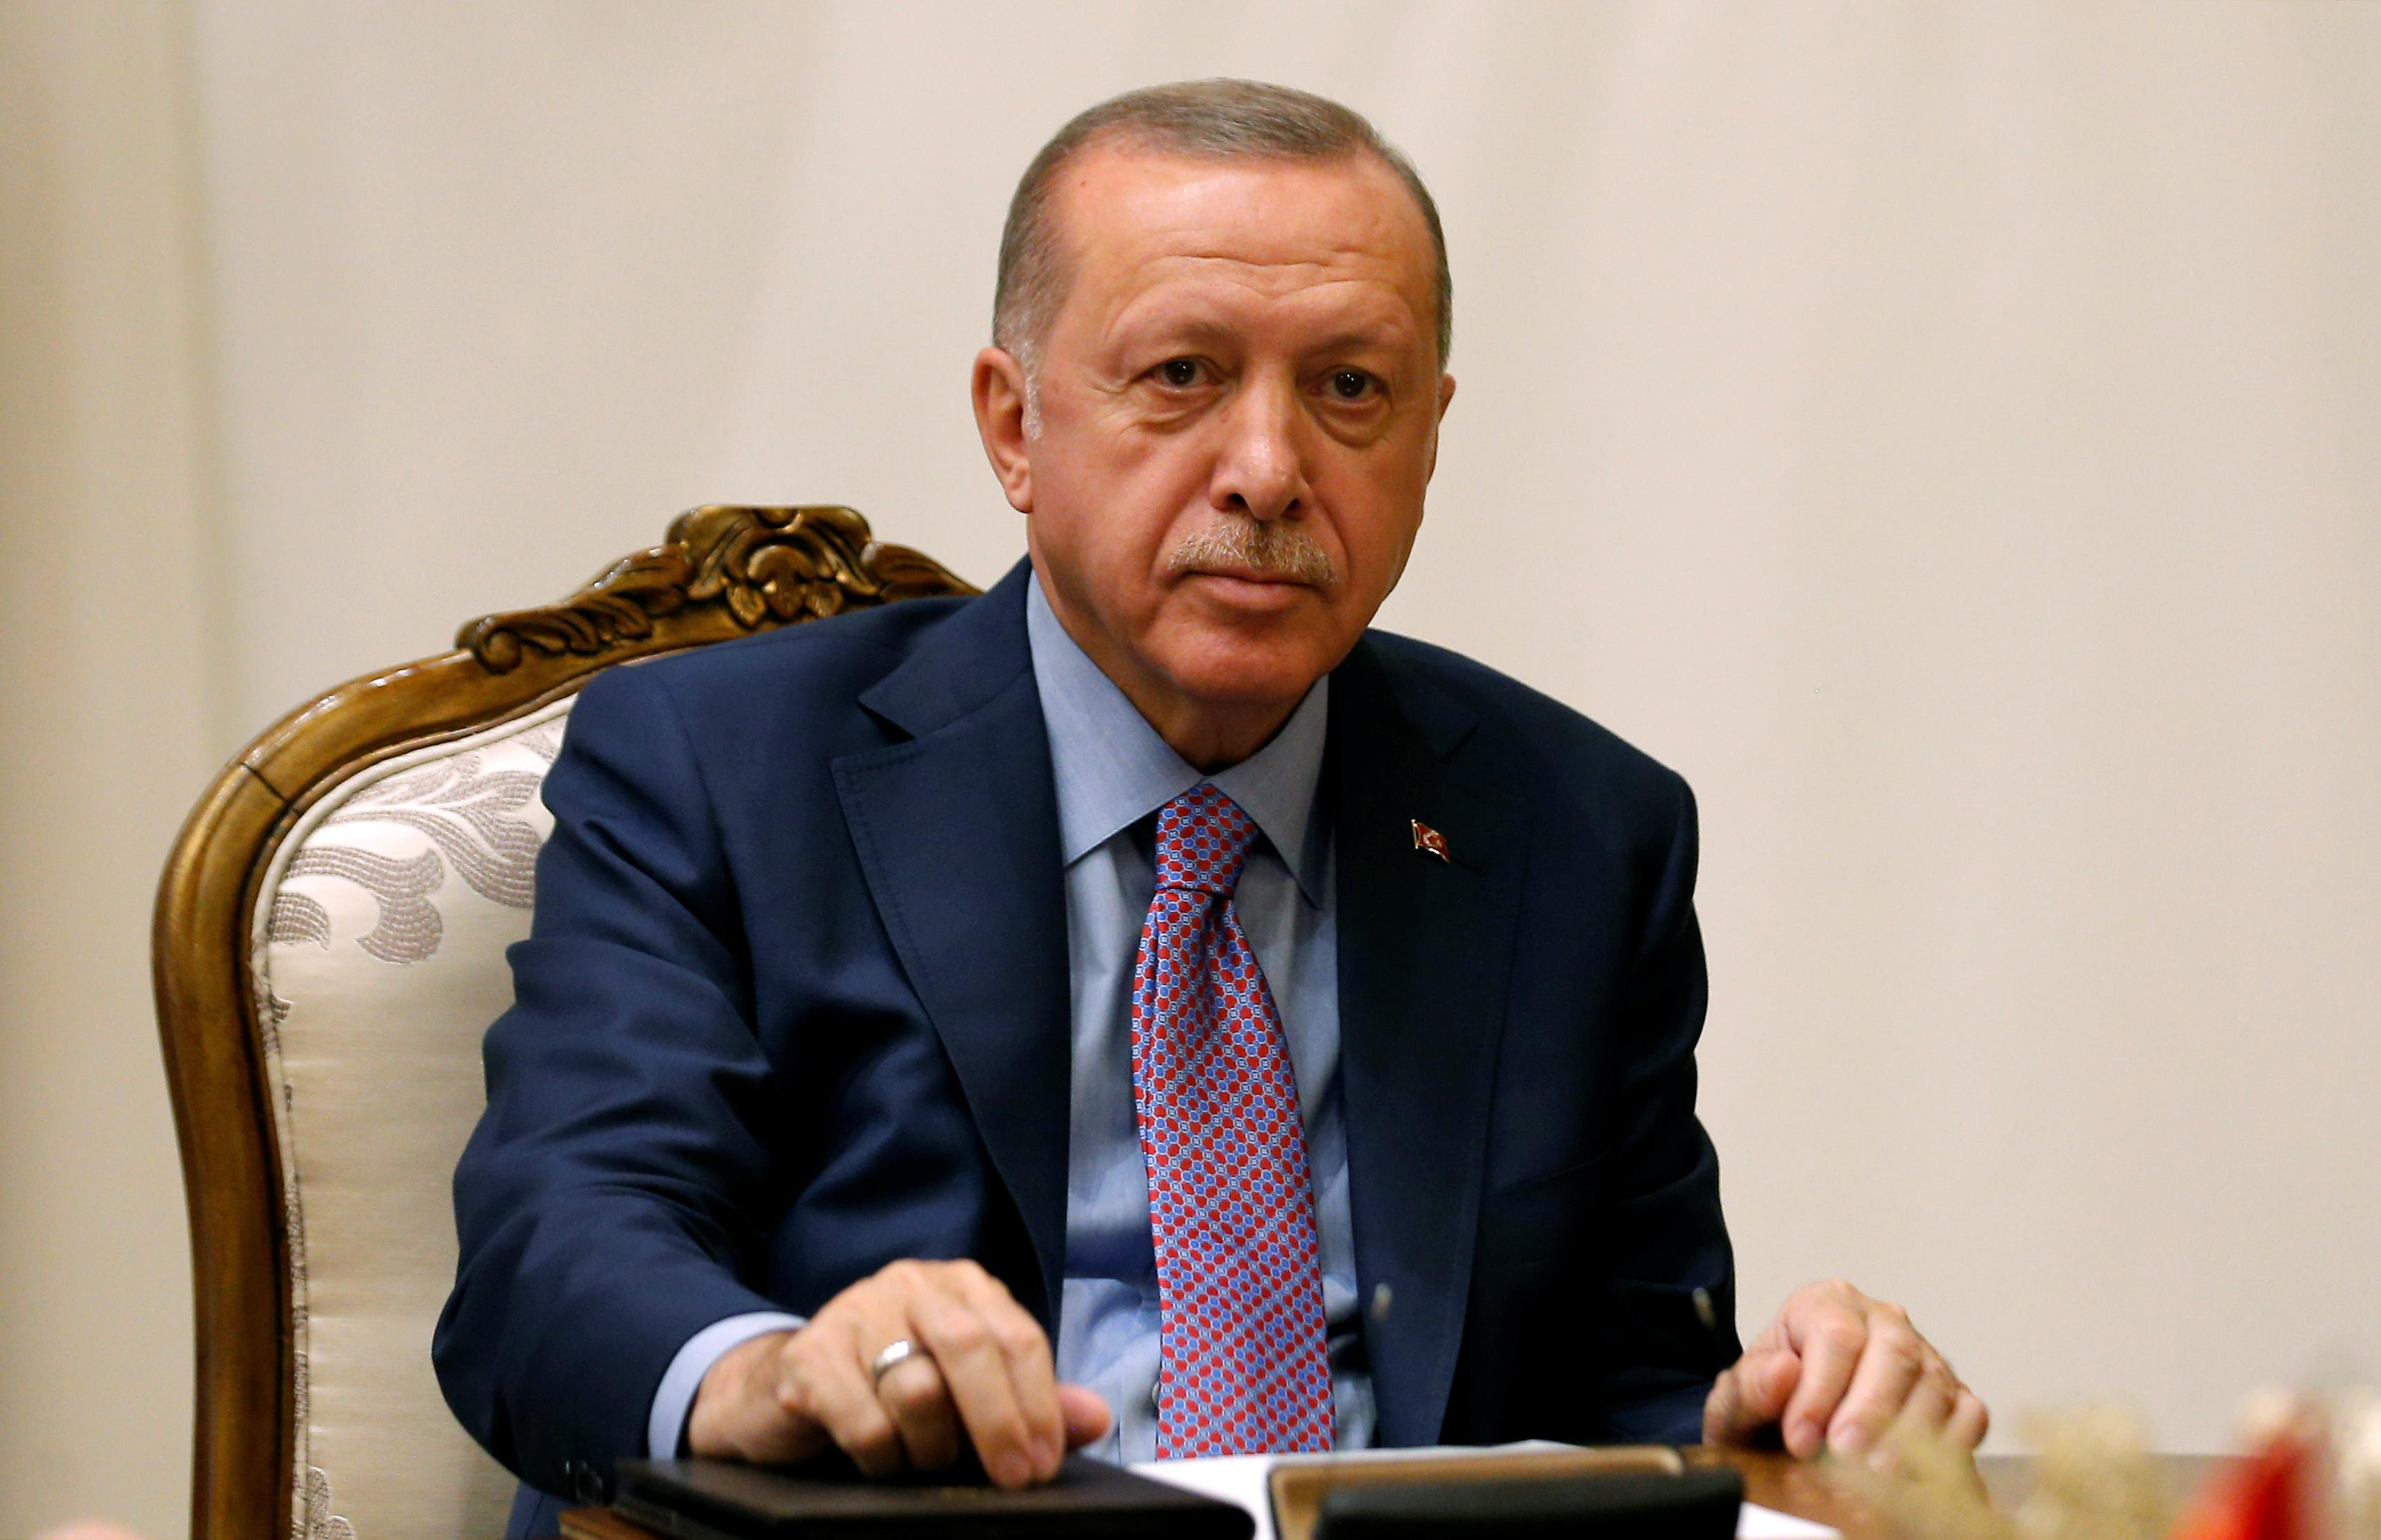 Erdogan says he will never allow vaping, will block e-cigarettes in...